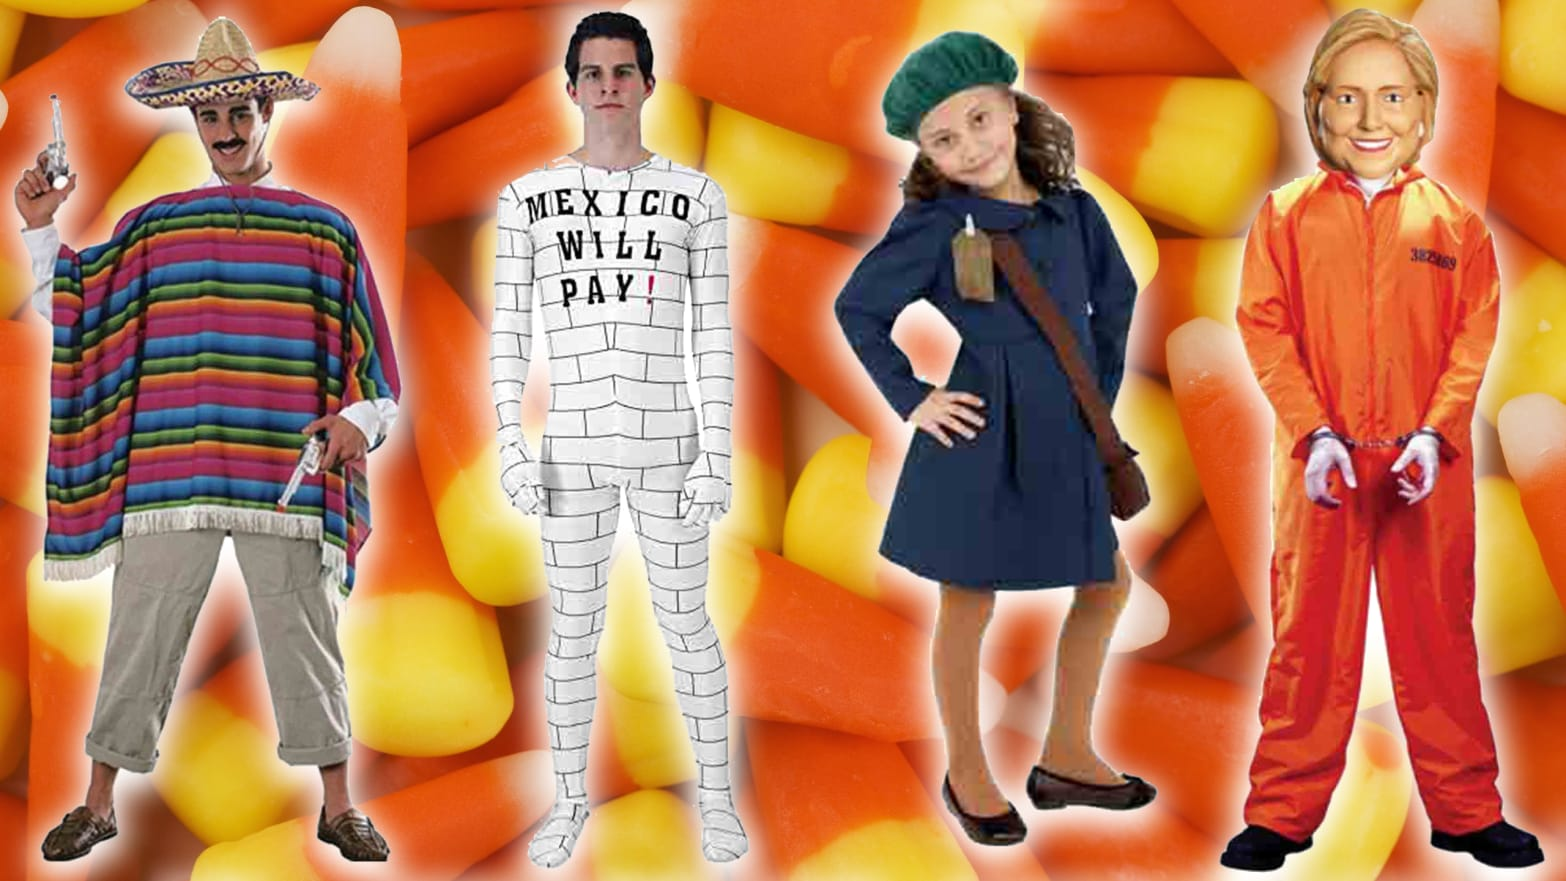 The Most Offensive Political Costumes of 2017